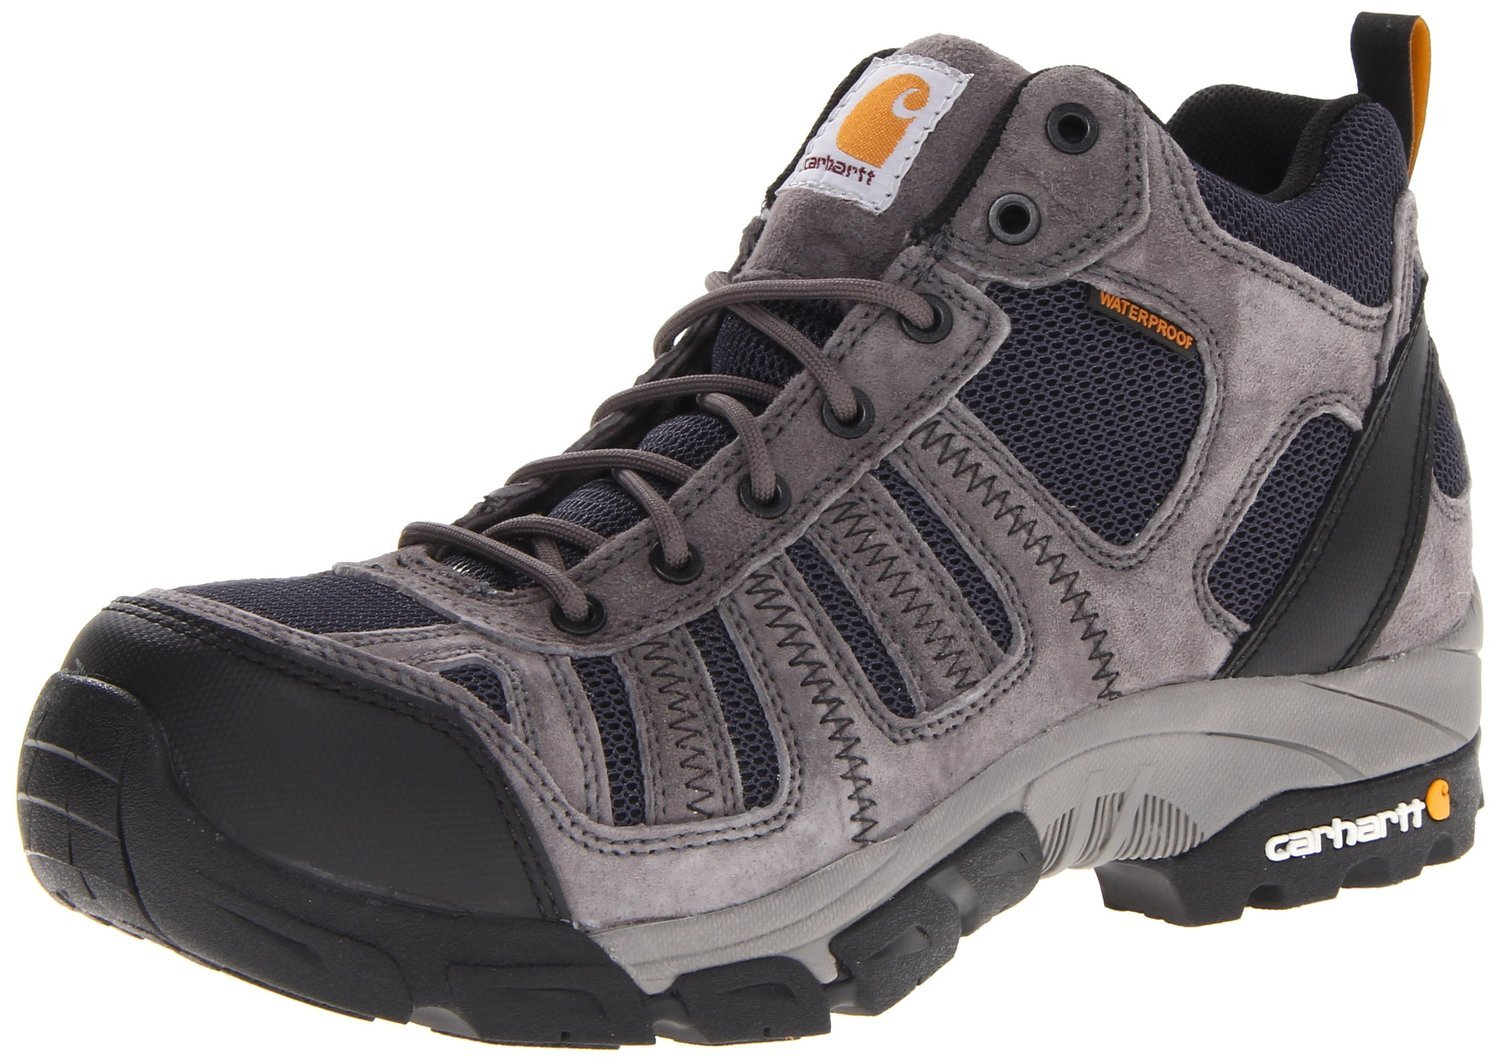 Carhartt Men's 4'' Lightweight Waterproof Composite Toe Work Hiker Boot CMH4375,Grey Suede/Navy Nylon,9 W US